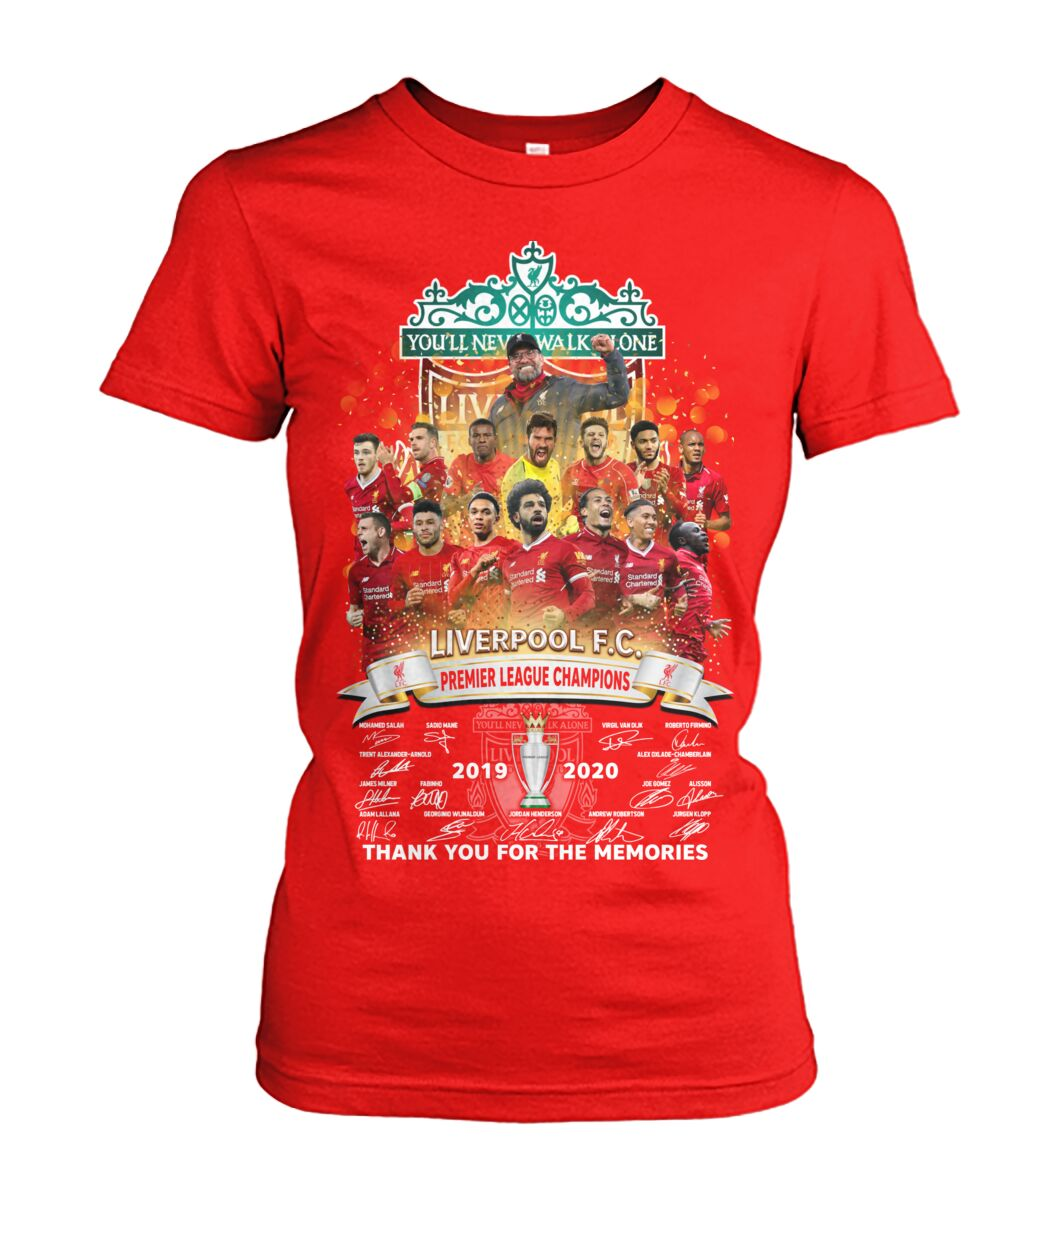 Liverpool fc premier league champions thank you for the memories